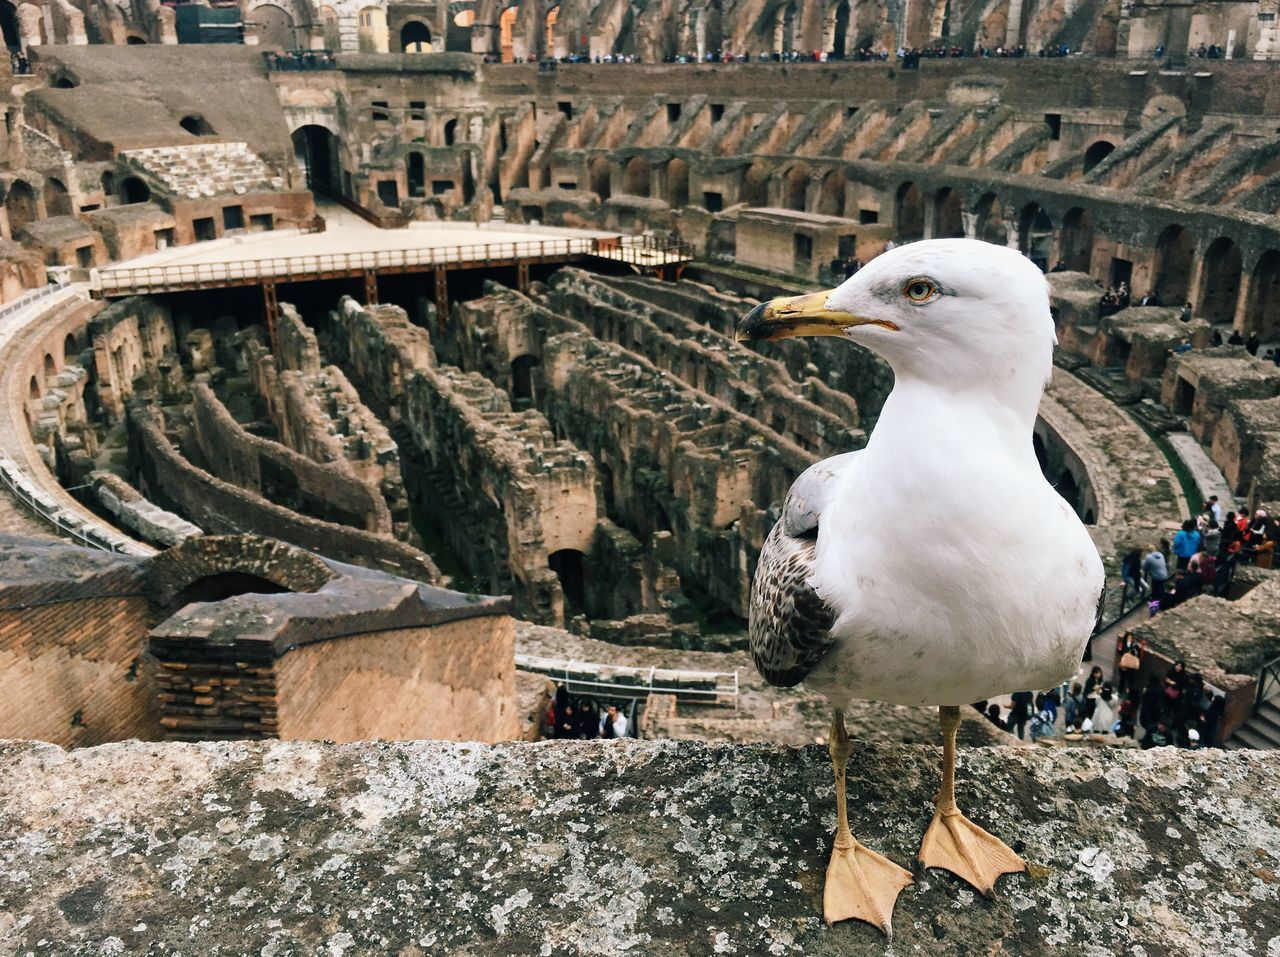 Colosseo Italy Travel Travel Destinations History Seagull Monument Traveling Bird Rome One Animal Outdoors Architecture Tourism Getting Inspired